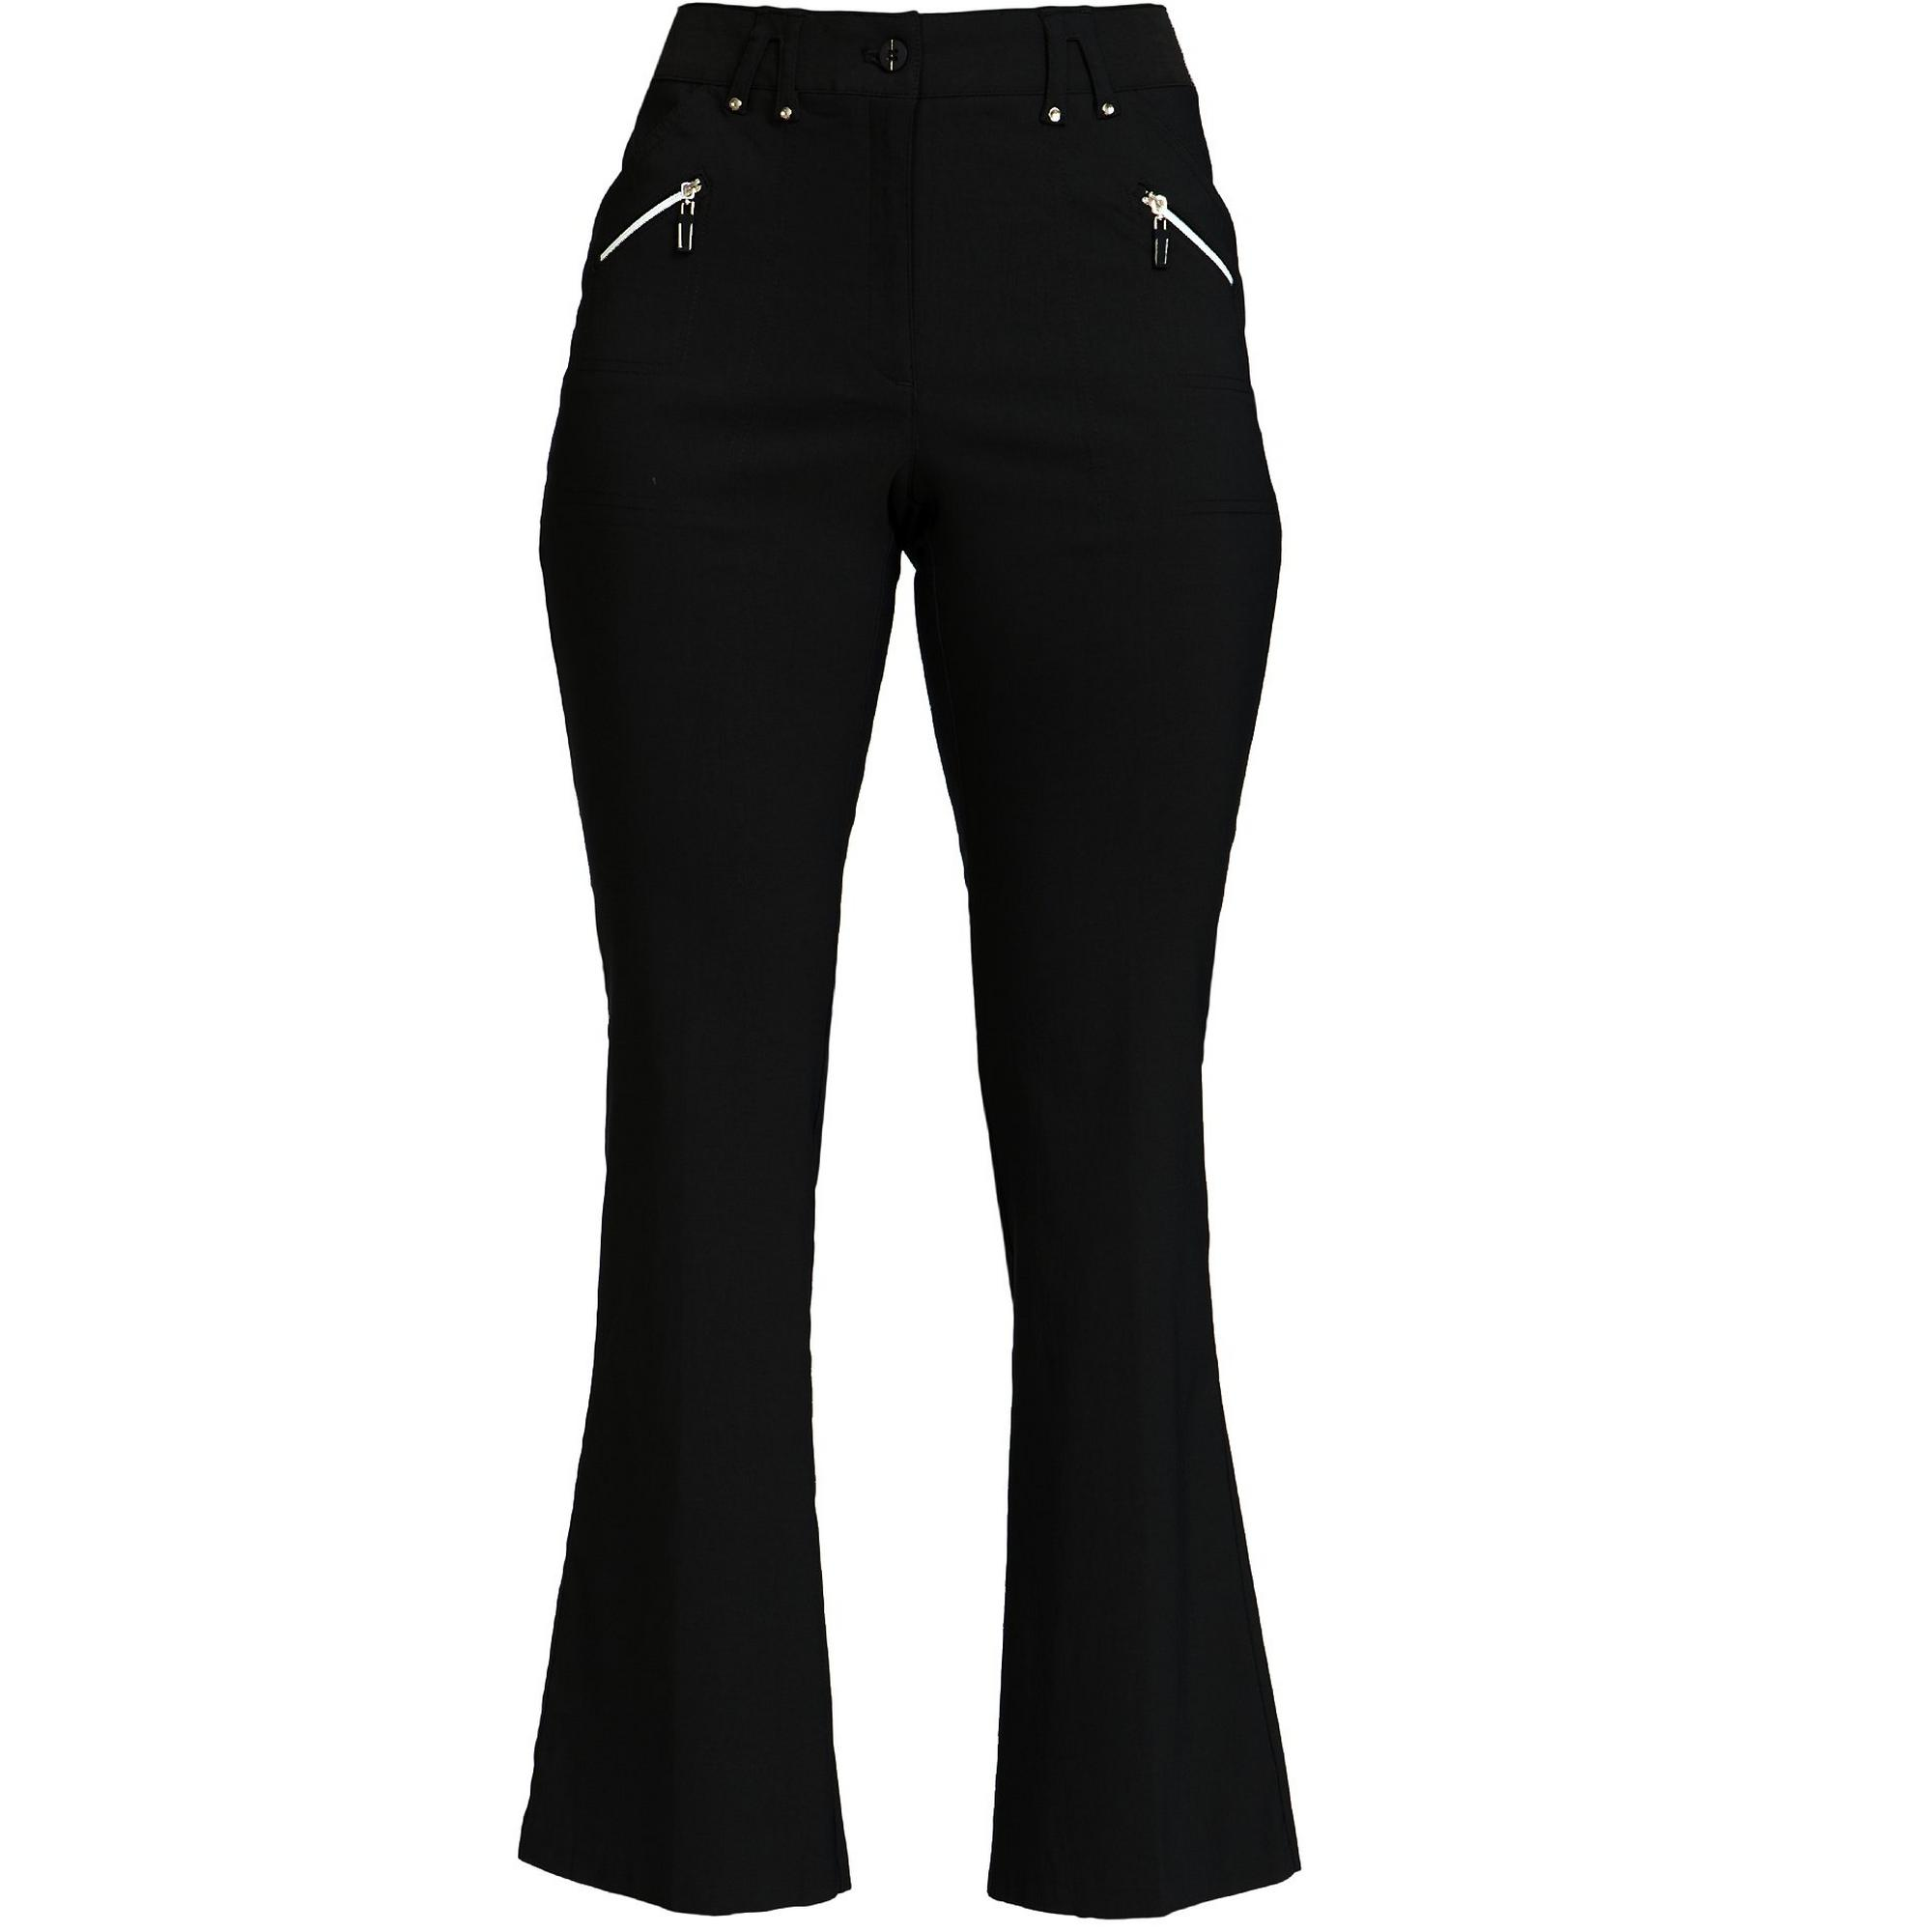 Women's Skinnylicious 41 Inch Fly Front Flare Pant